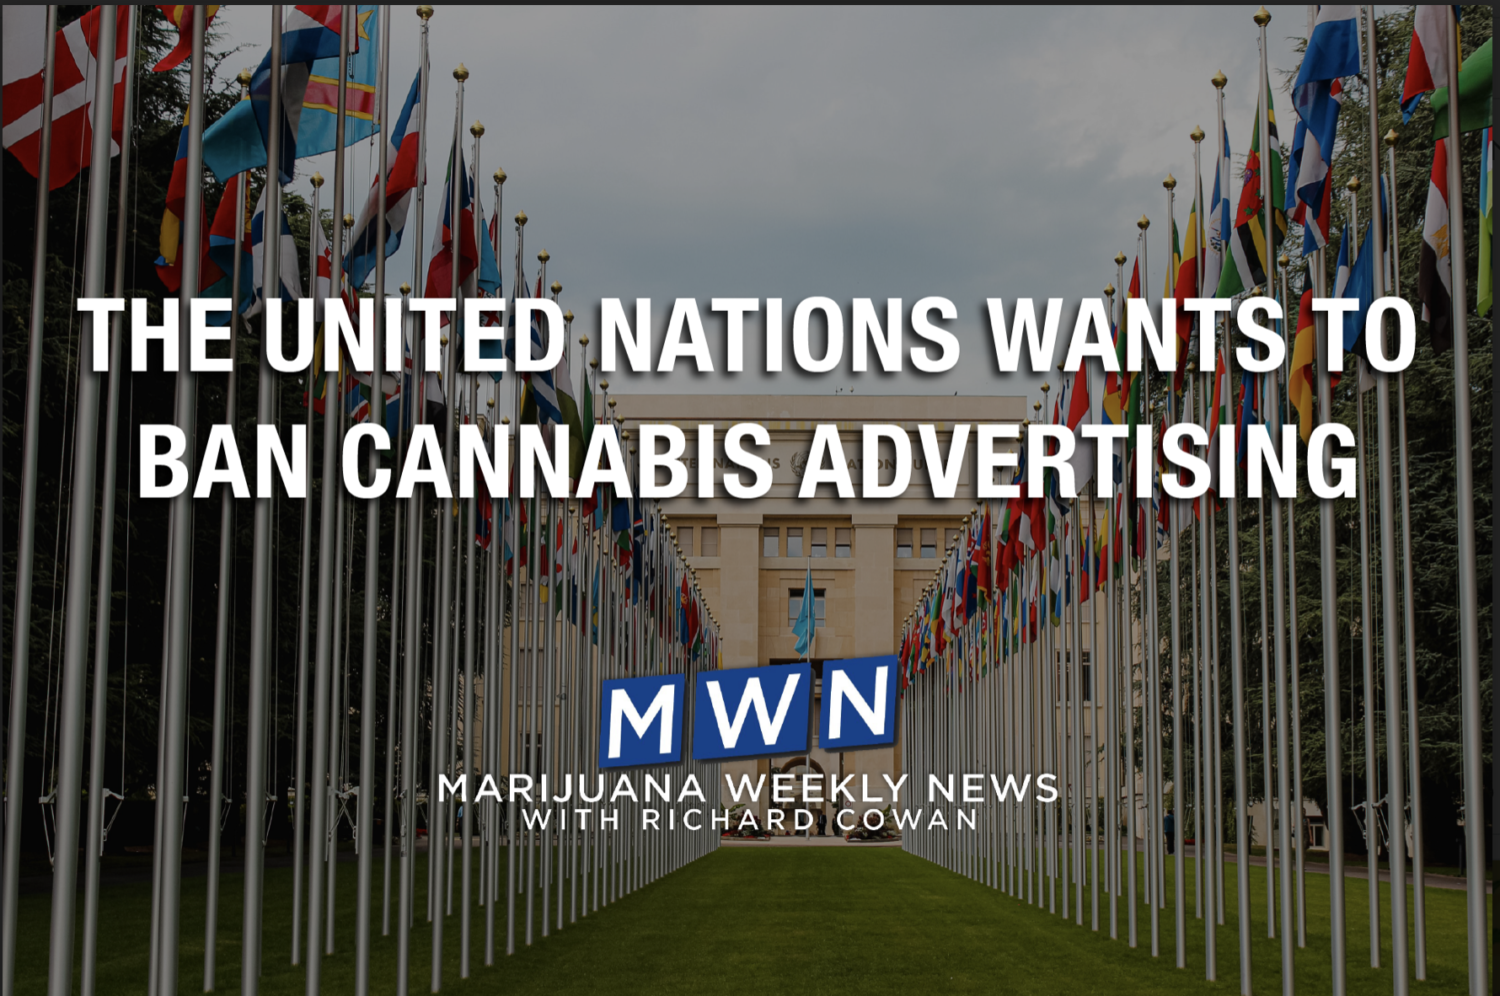 The United Nations Wants to Ban Cannabis Advertising